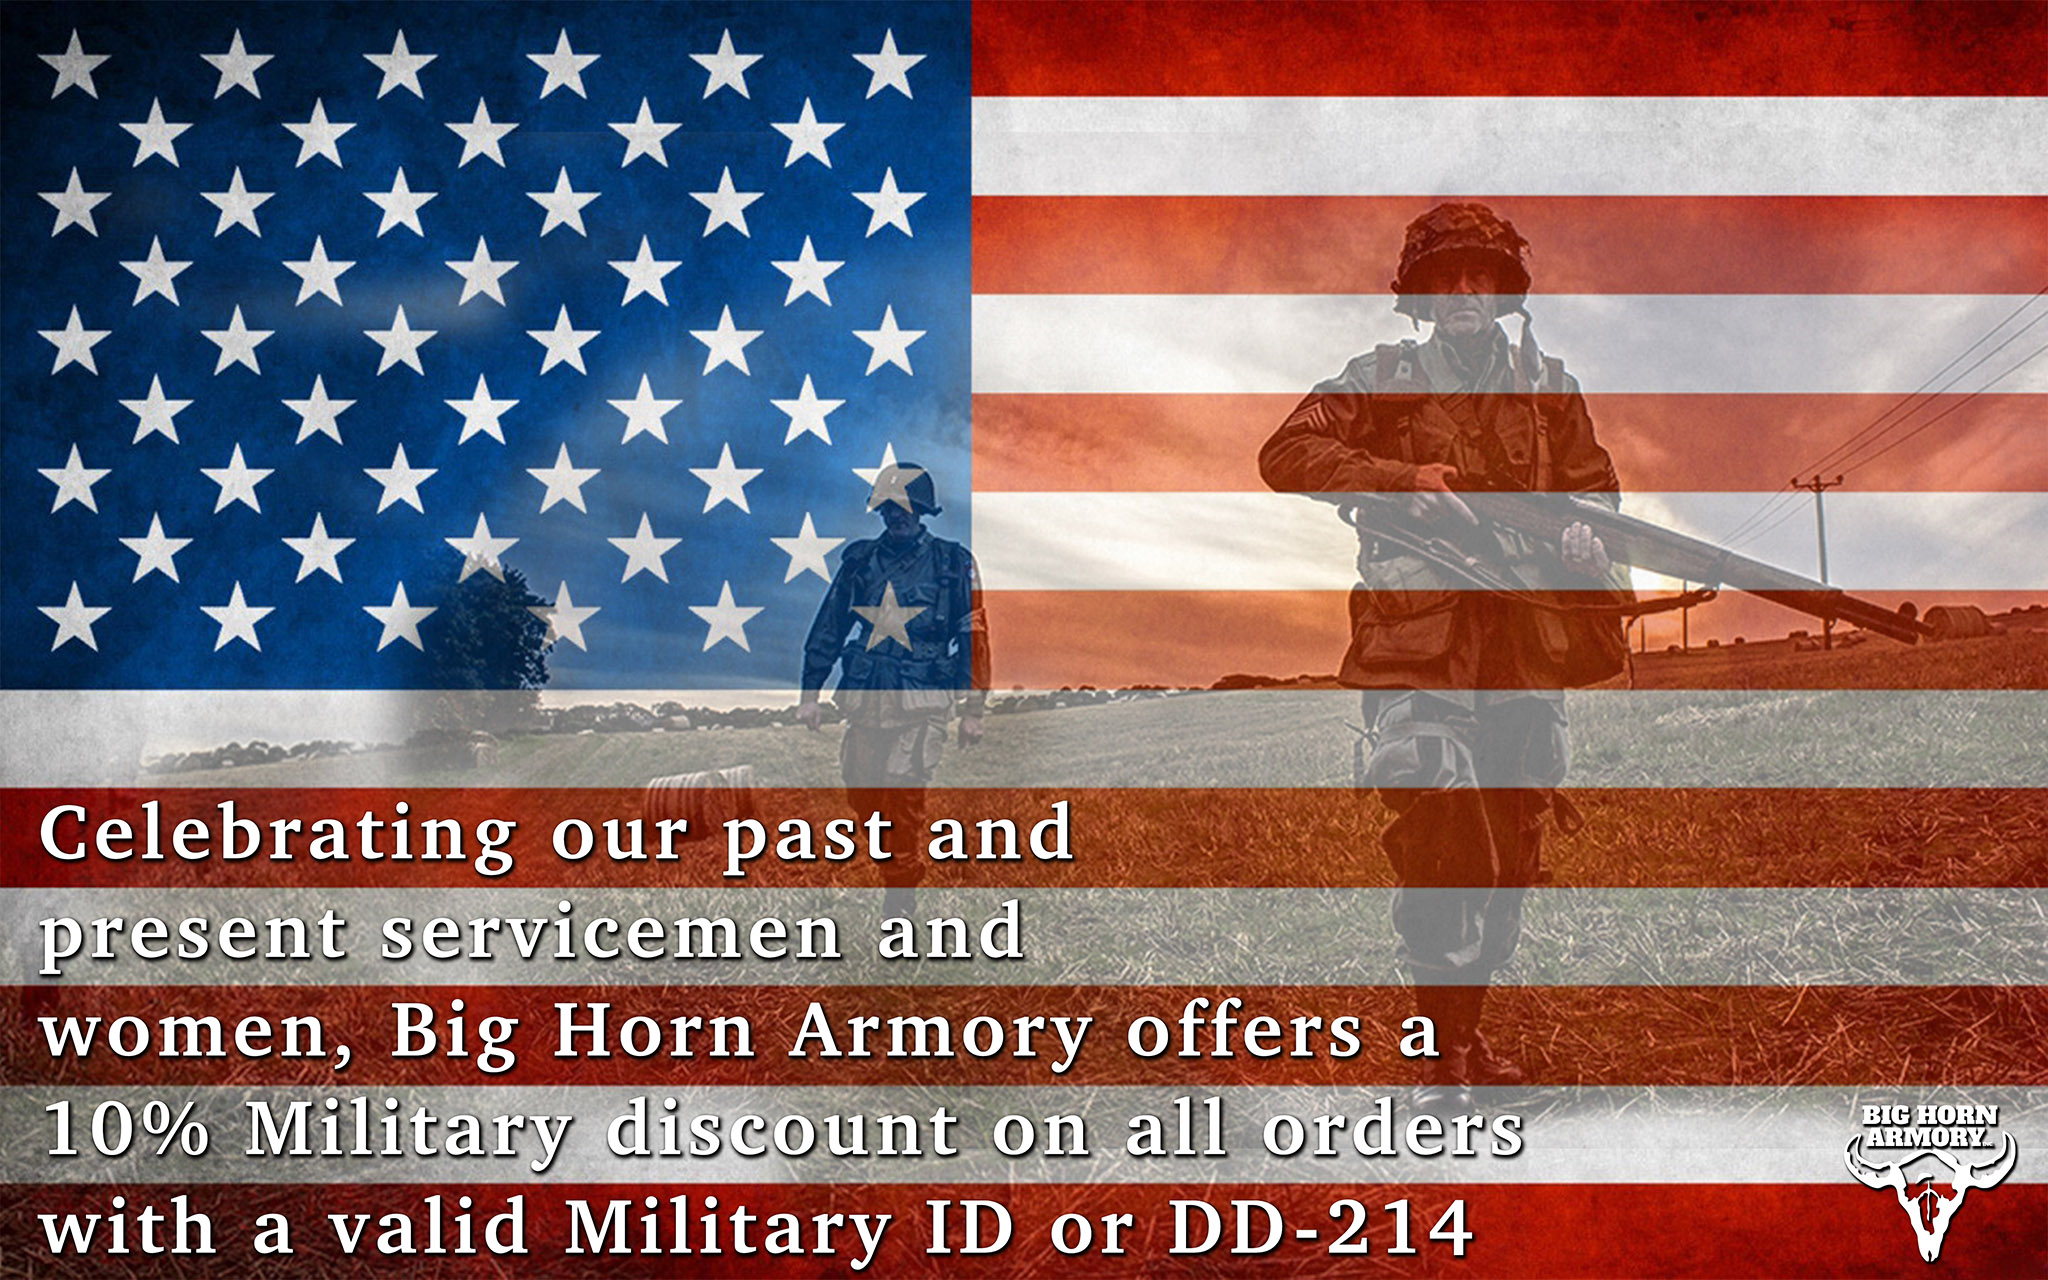 Big Horn Armory (BHA) Honors America's Armed Forces with Military Discount